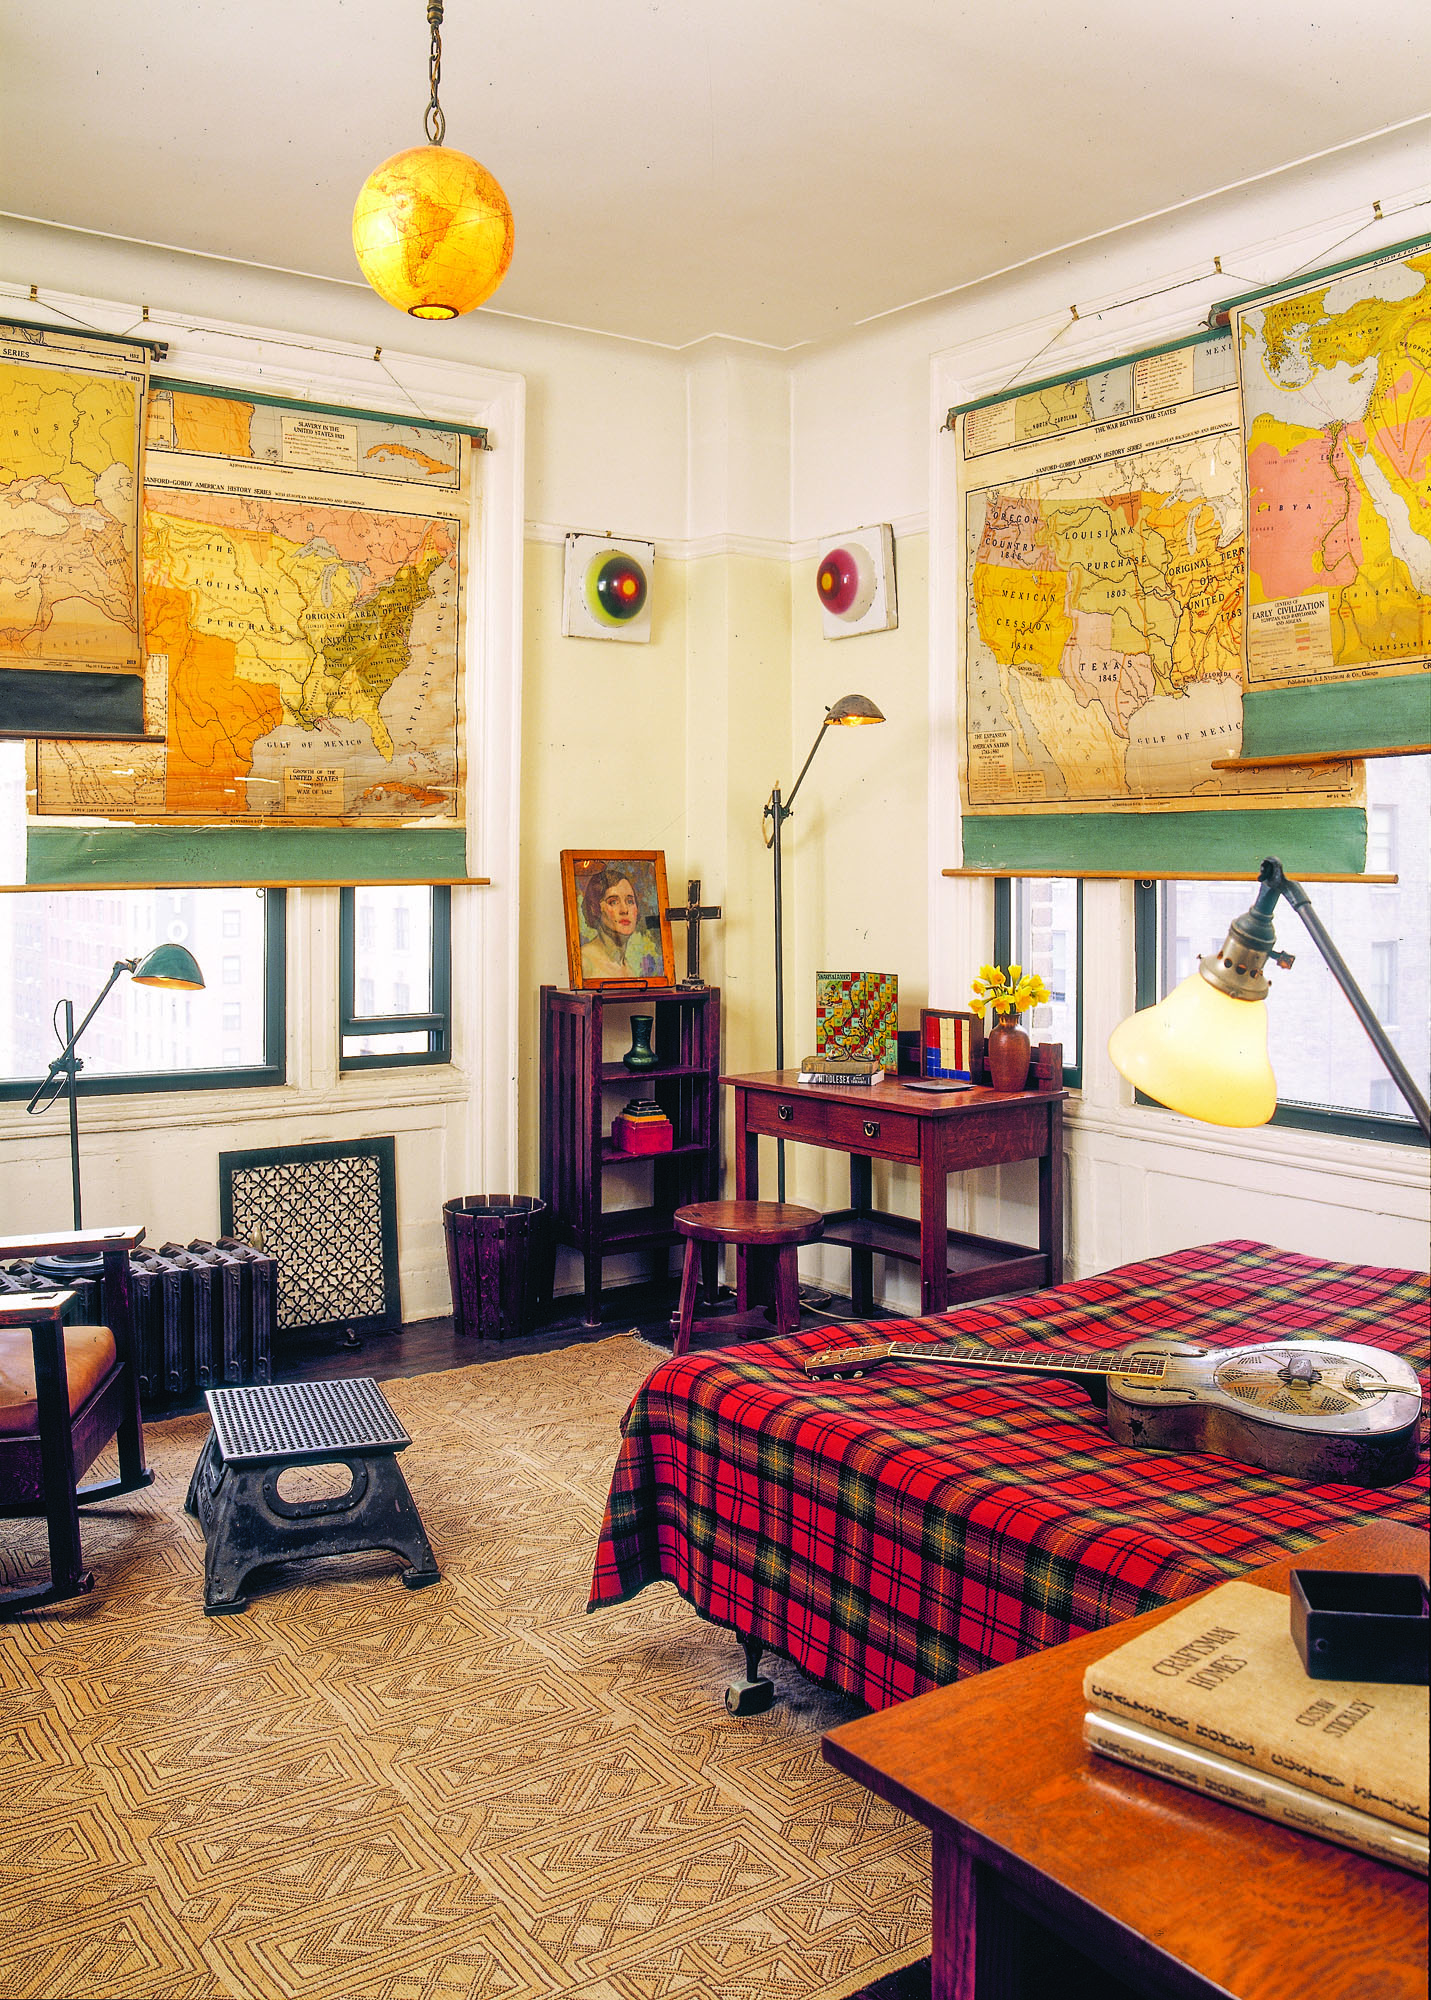 vintage map window shade